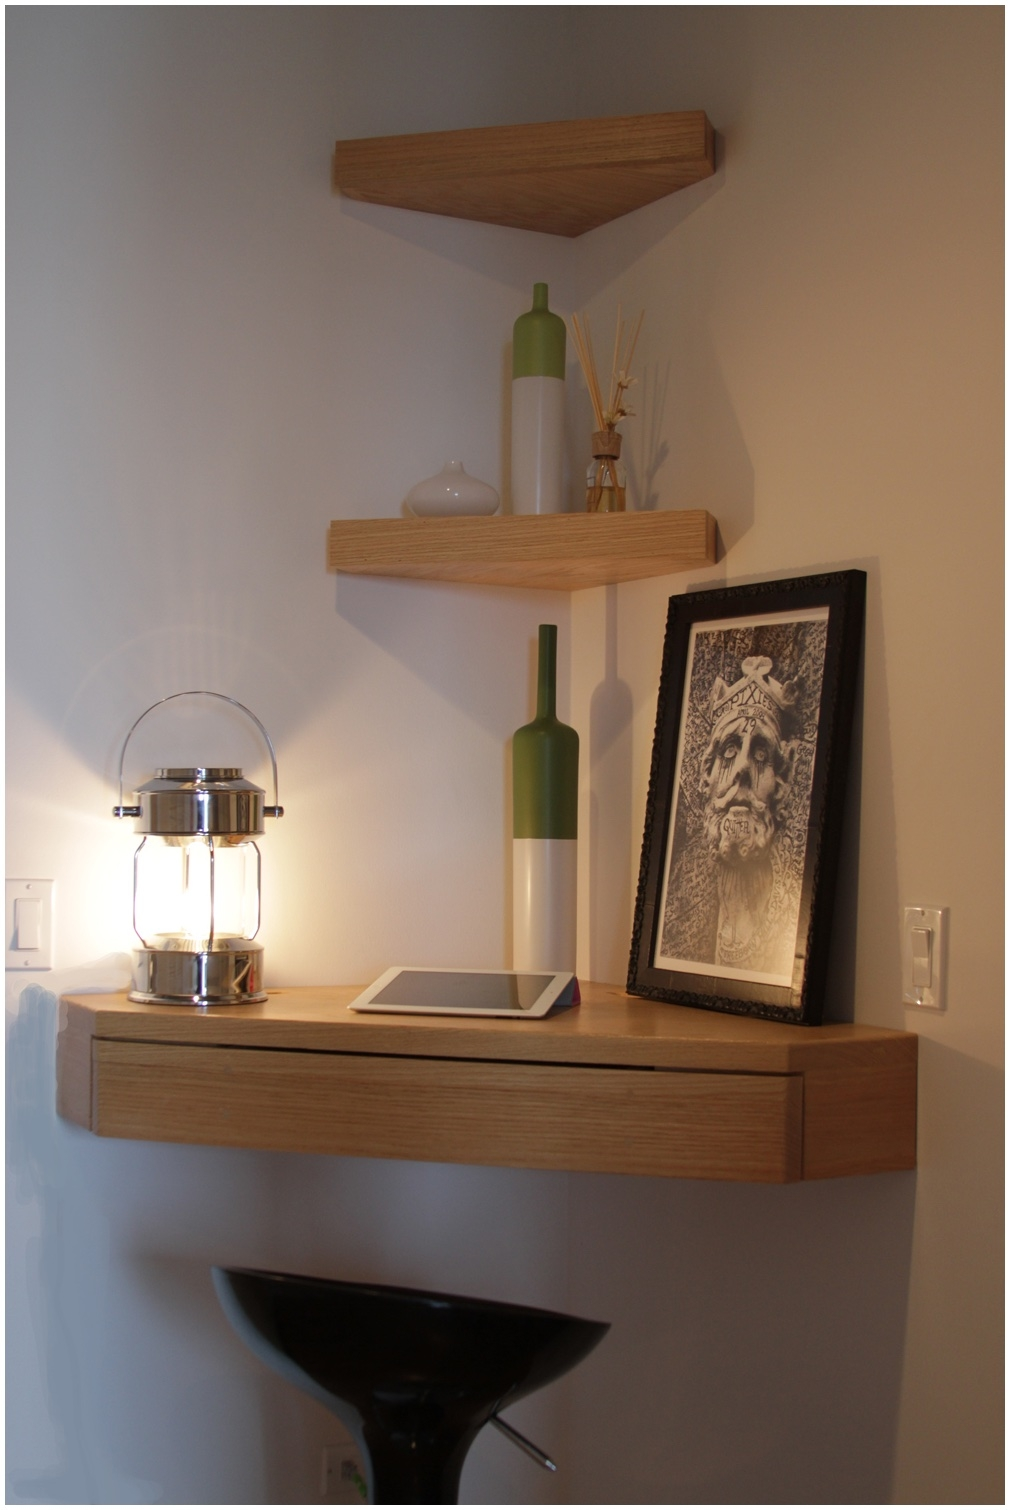 Featured Image of Corner Shelf For Dvd Player